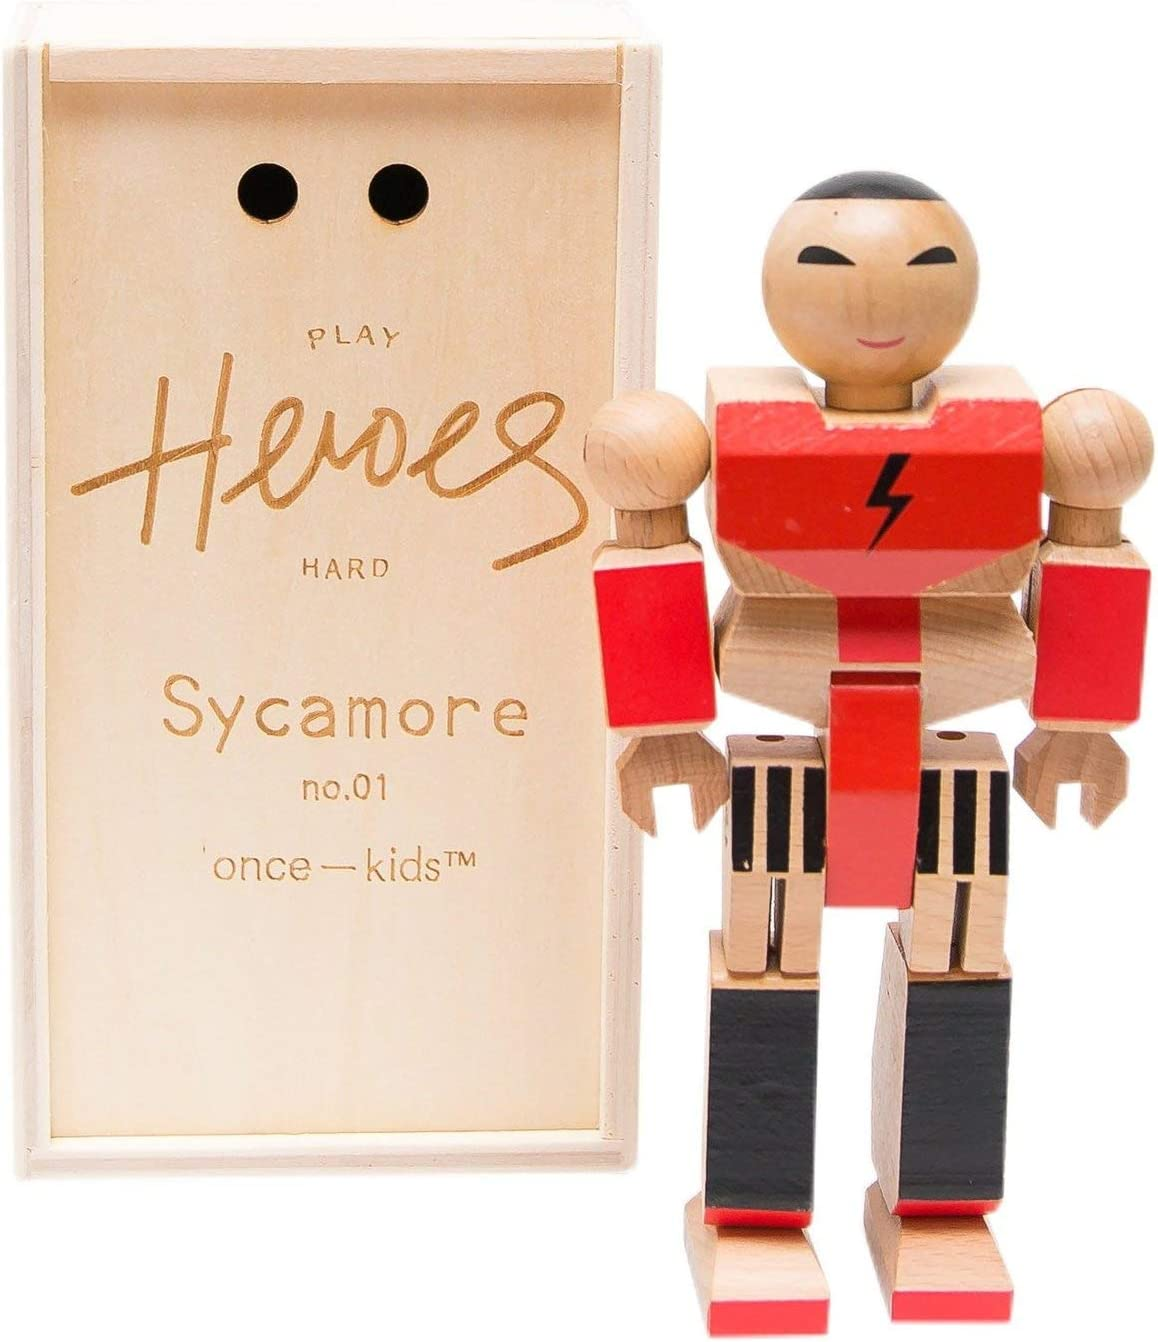 ONCE KIDS Playhard Heroes #1 Sycamore Wood Action Figure